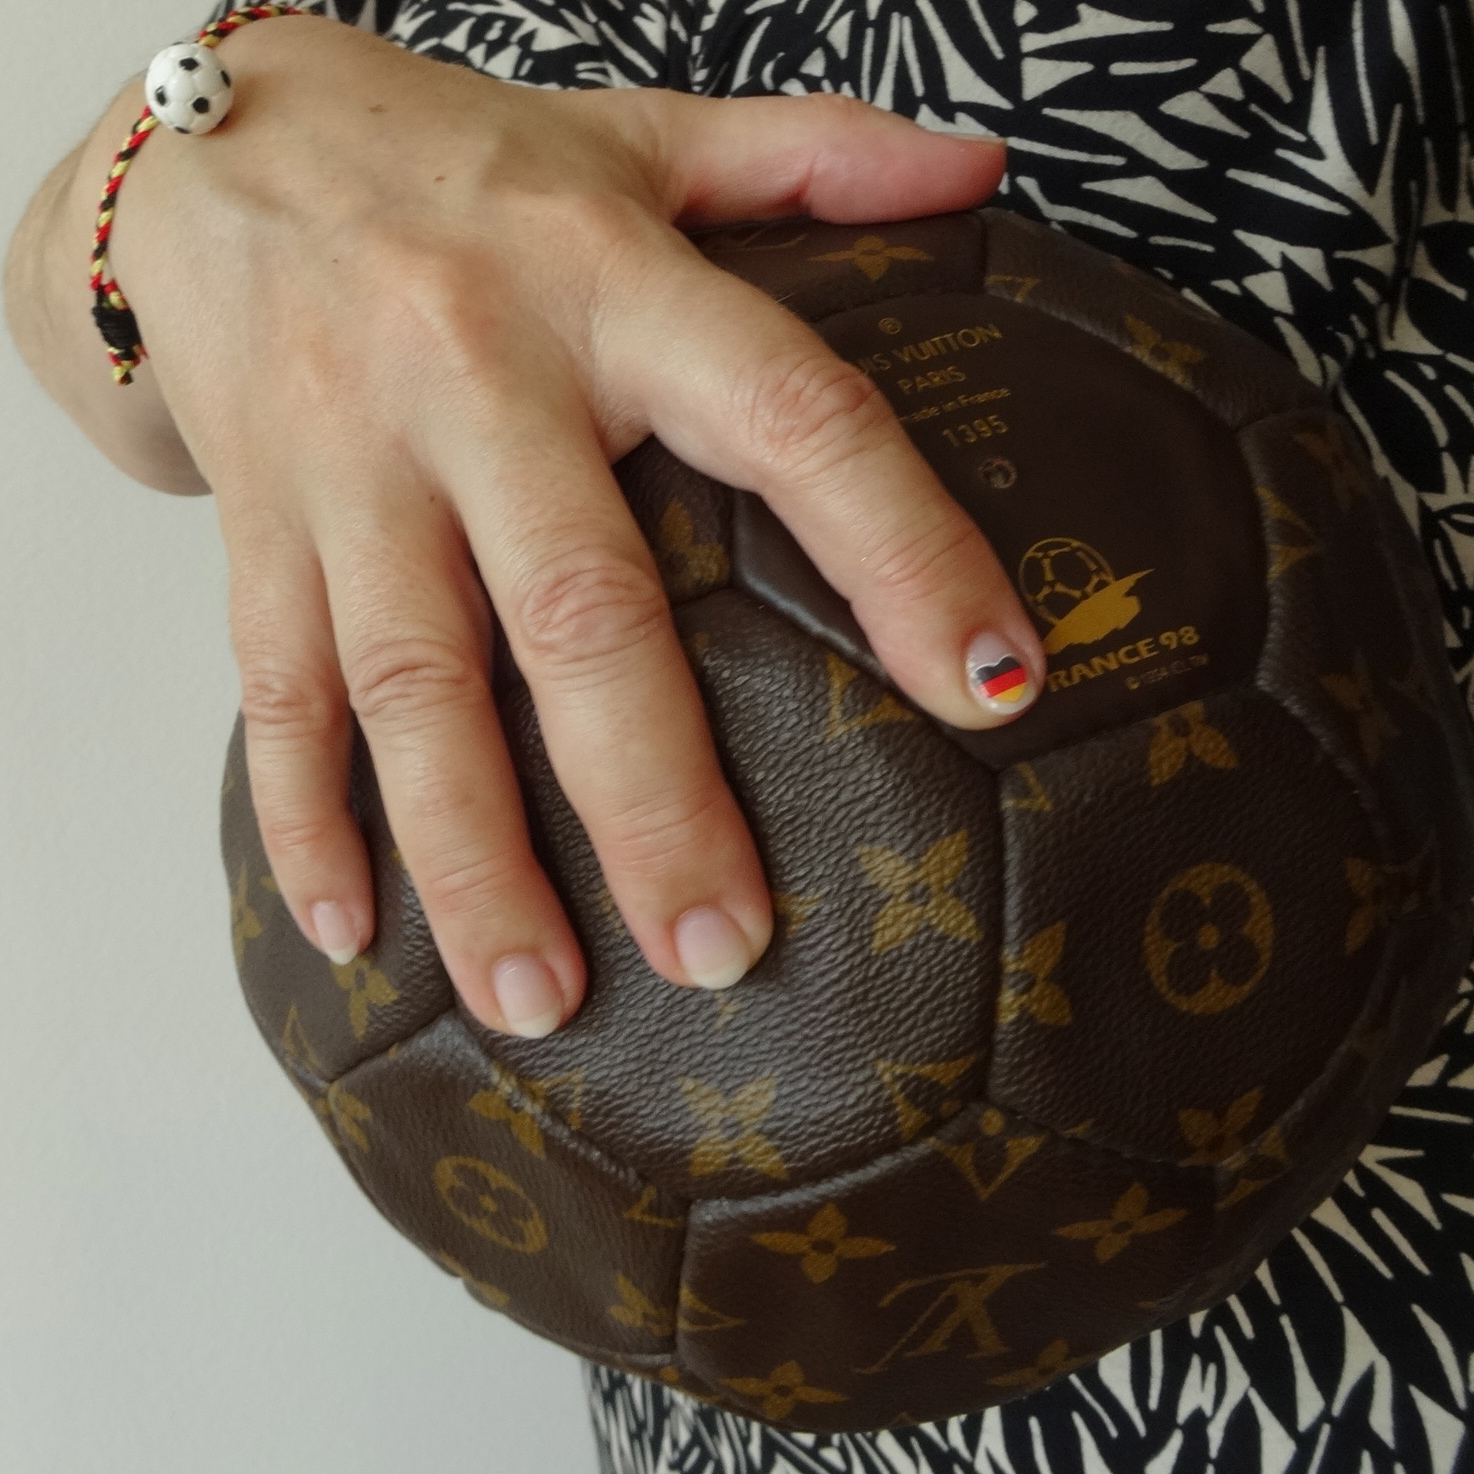 Louis Vuitton Football fussball essence armband humba HappyFace313